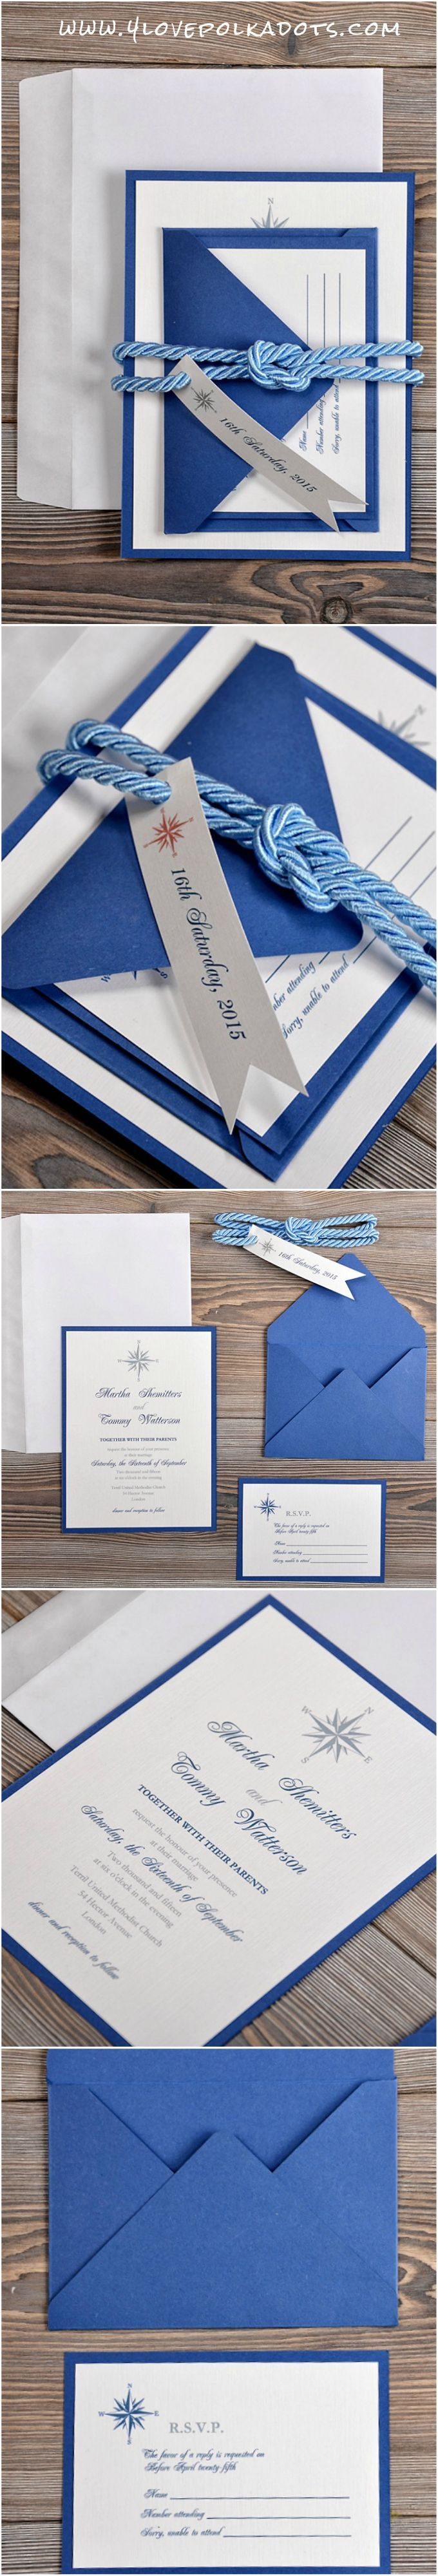 These invitations tho....